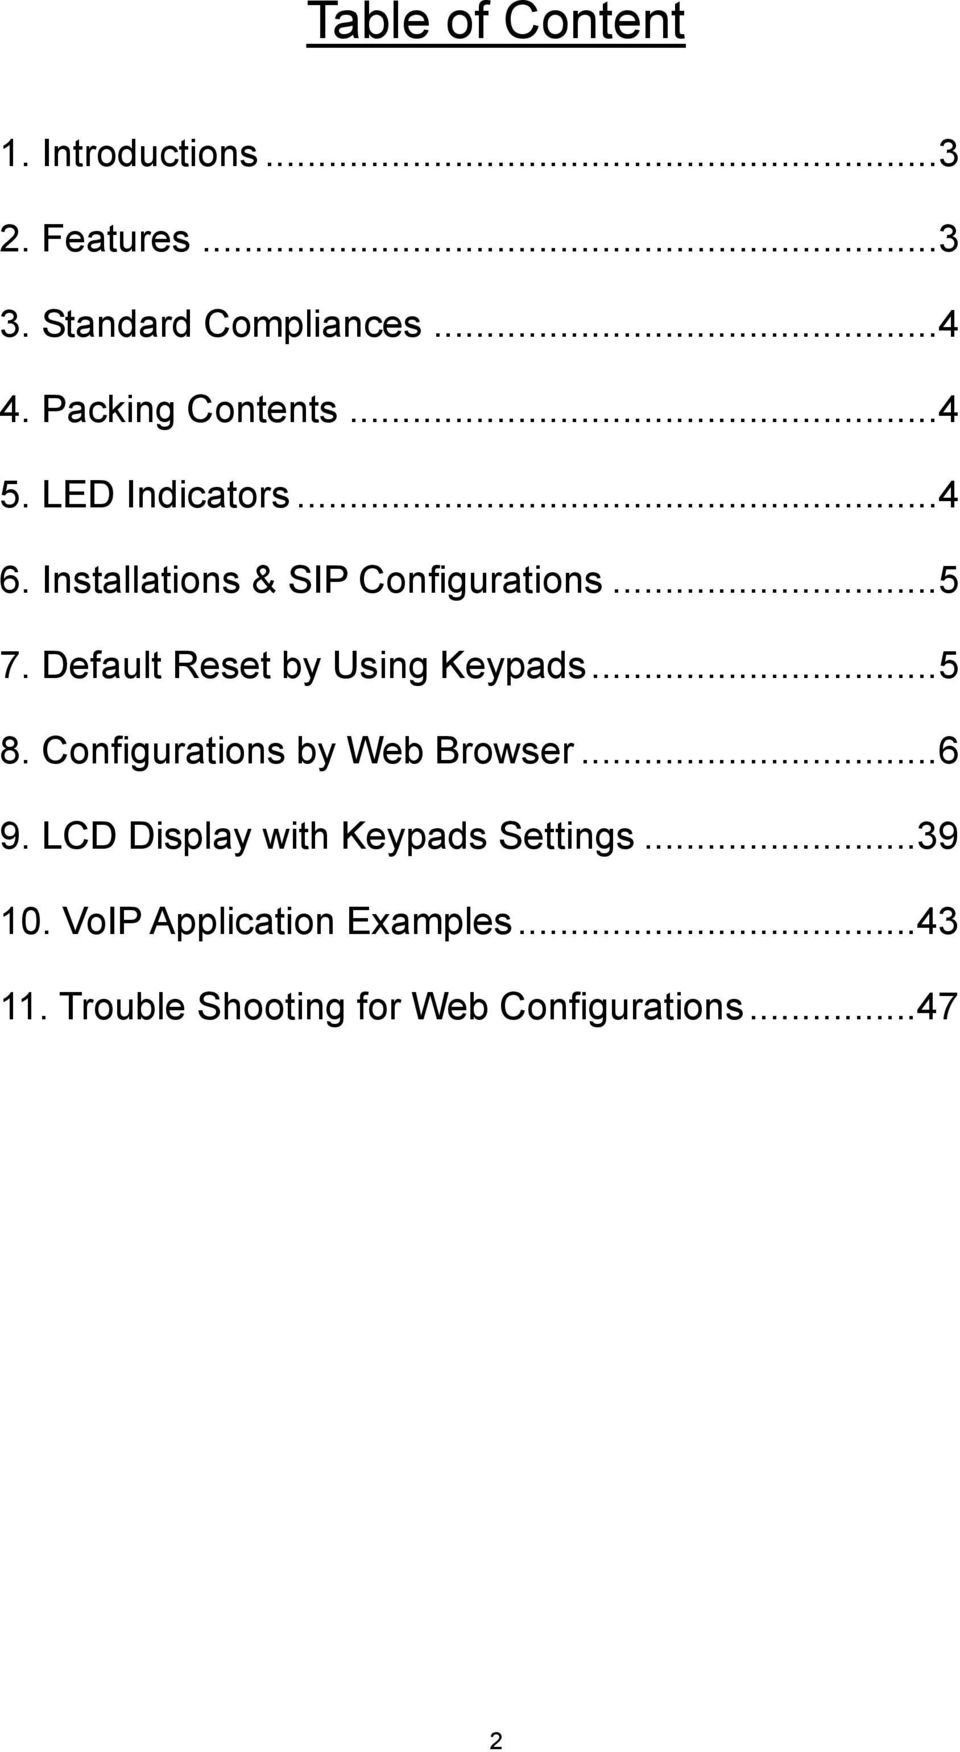 Default Reset by Using Keypads...5 8. Configurations by Web Browser...6 9.